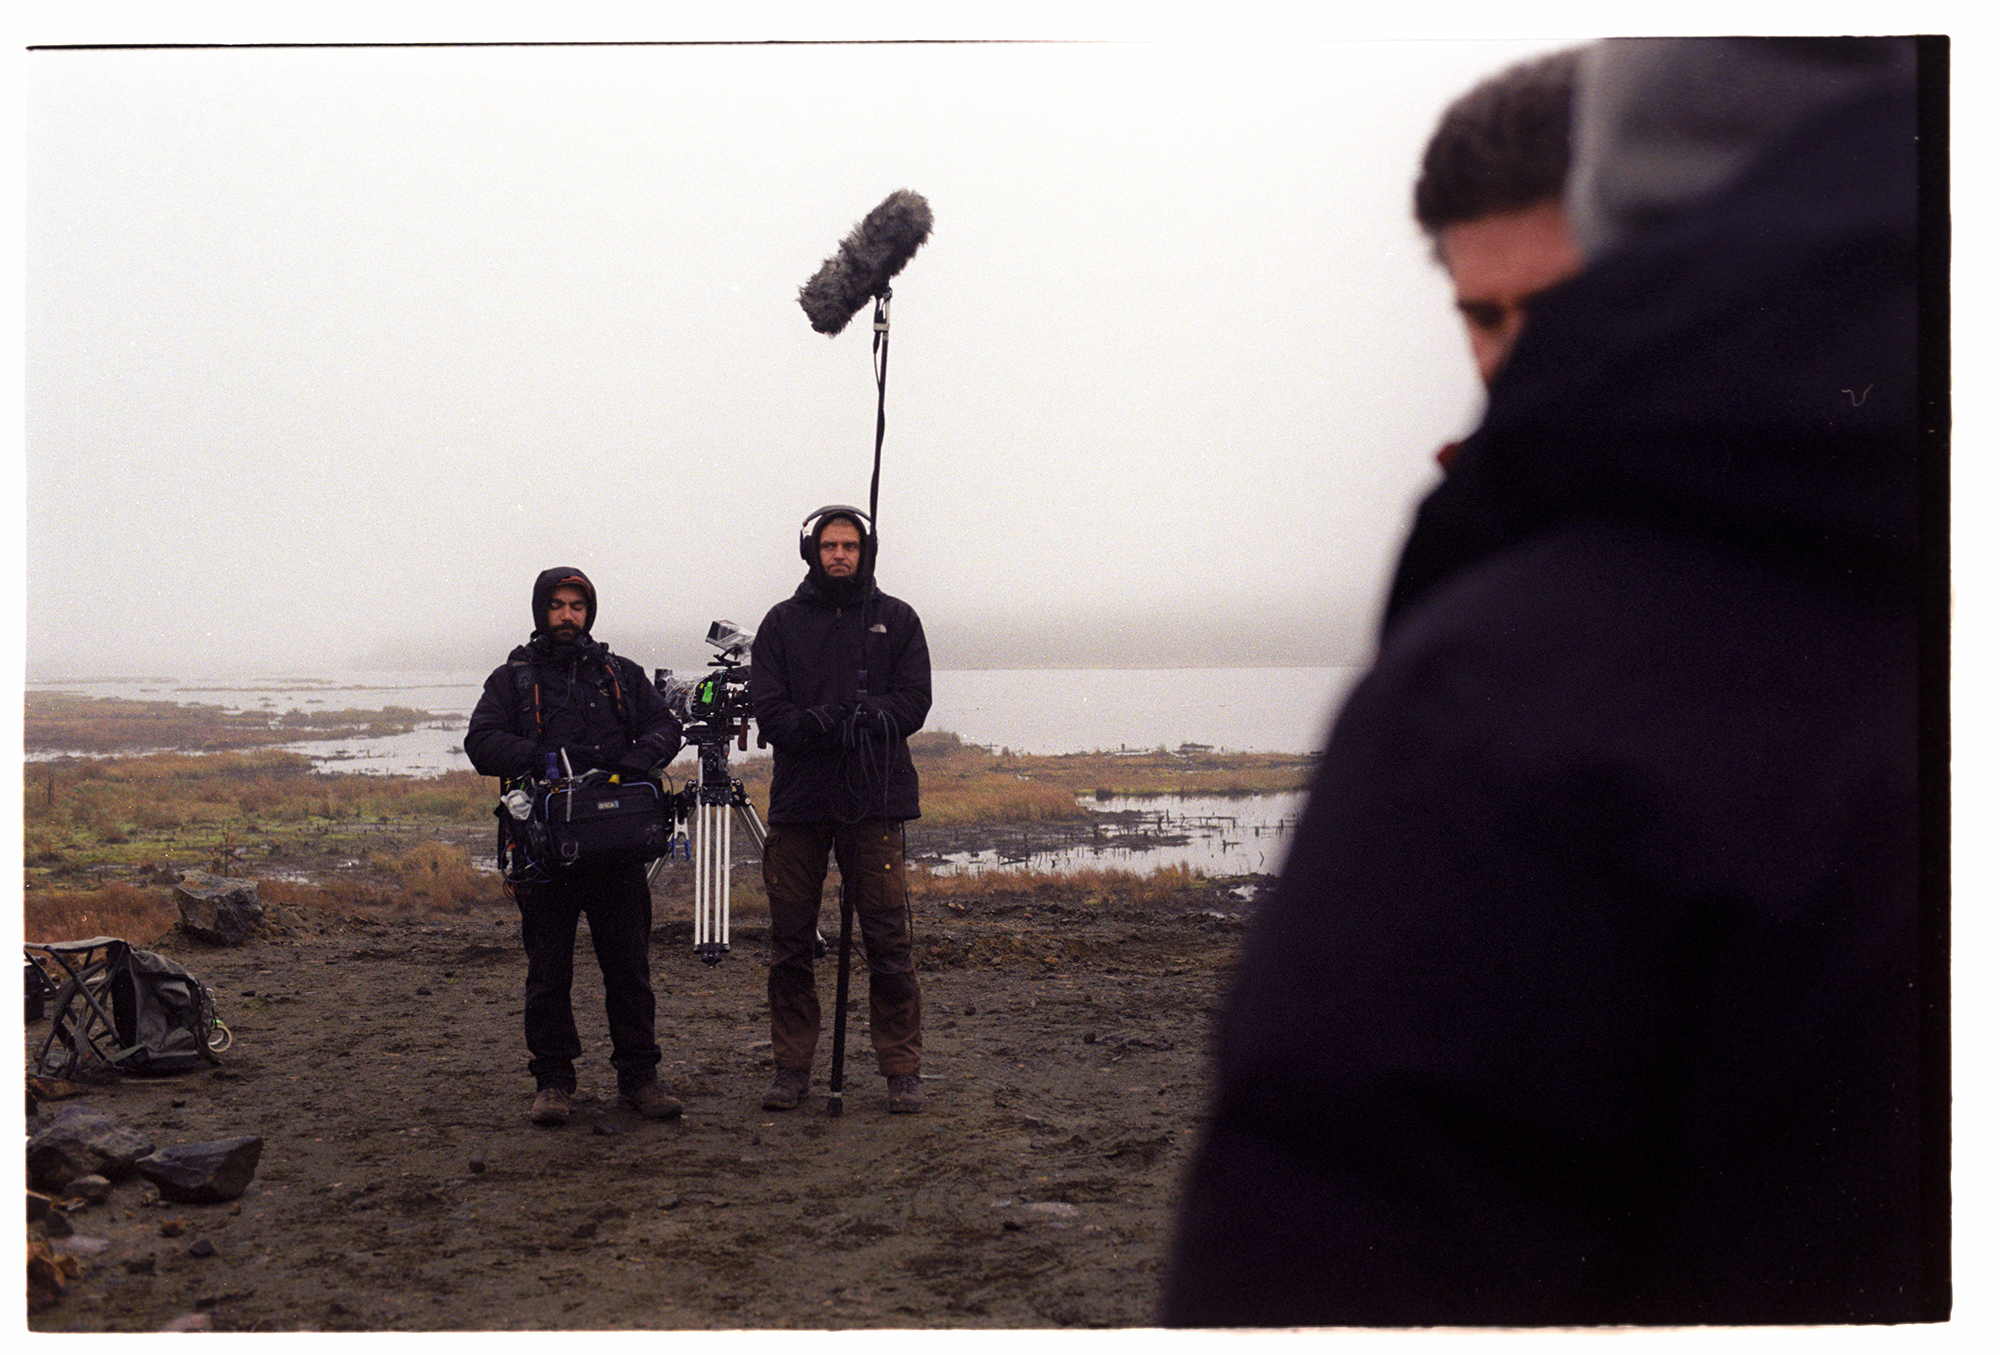 Shooting  Viimased  (The Last Ones) in Lapland (Finland). Photo by Teddy Puusepp